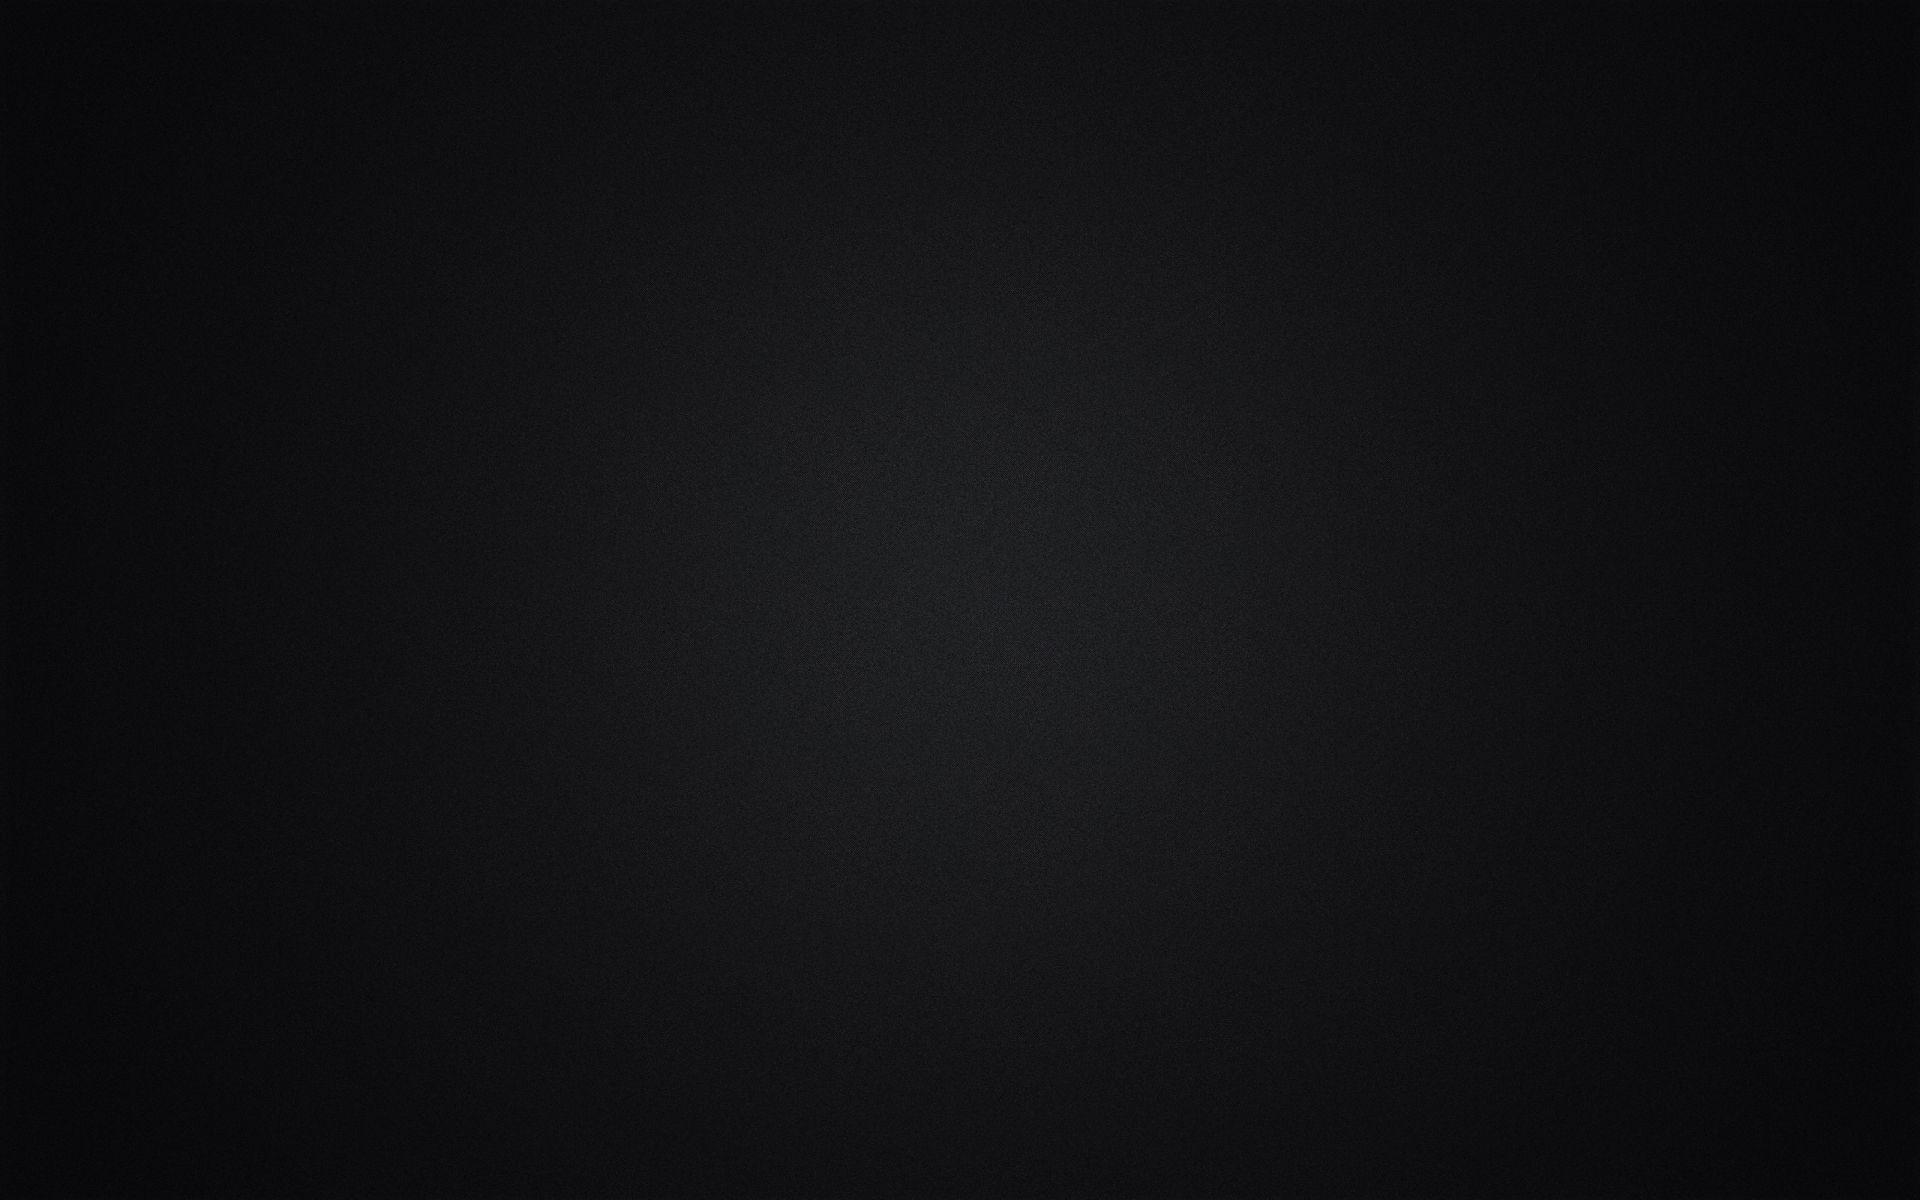 HD Black Screen wallpaper **HD WallpaperBlack Textures